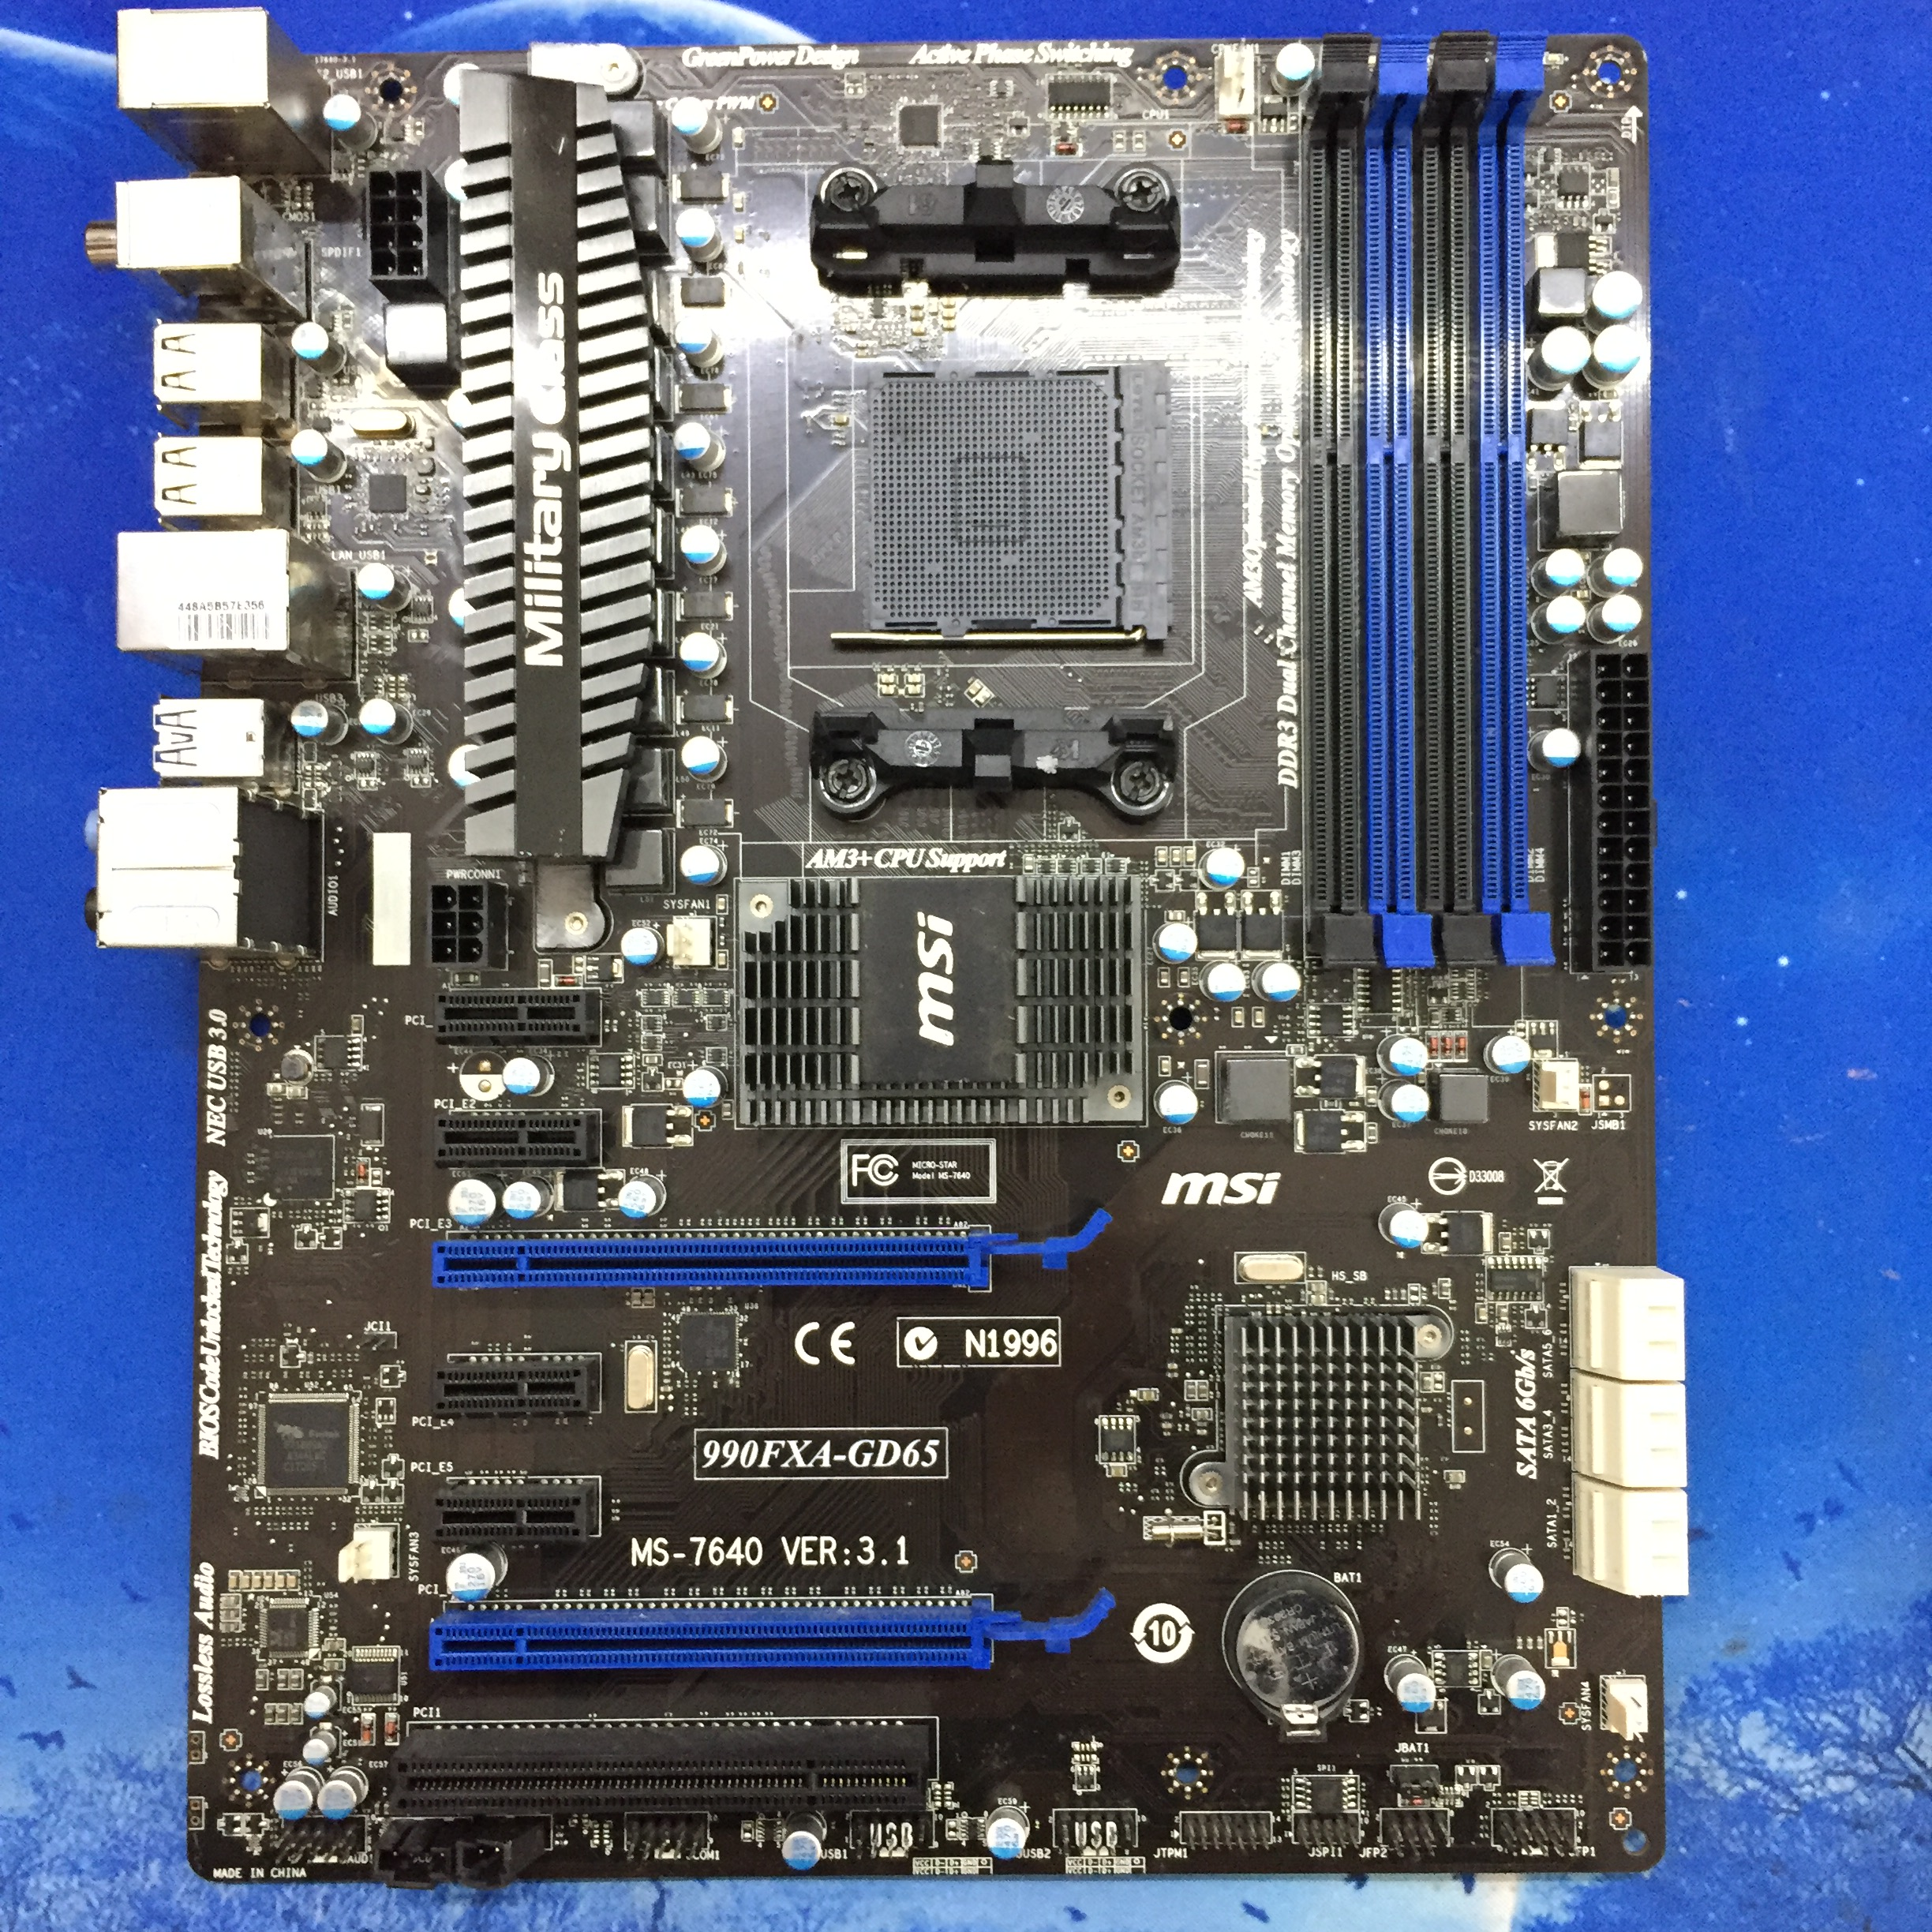 MSI 990FXA-GD65 supports open nuclear overclocking FX6300 8350 9590 6 card mining